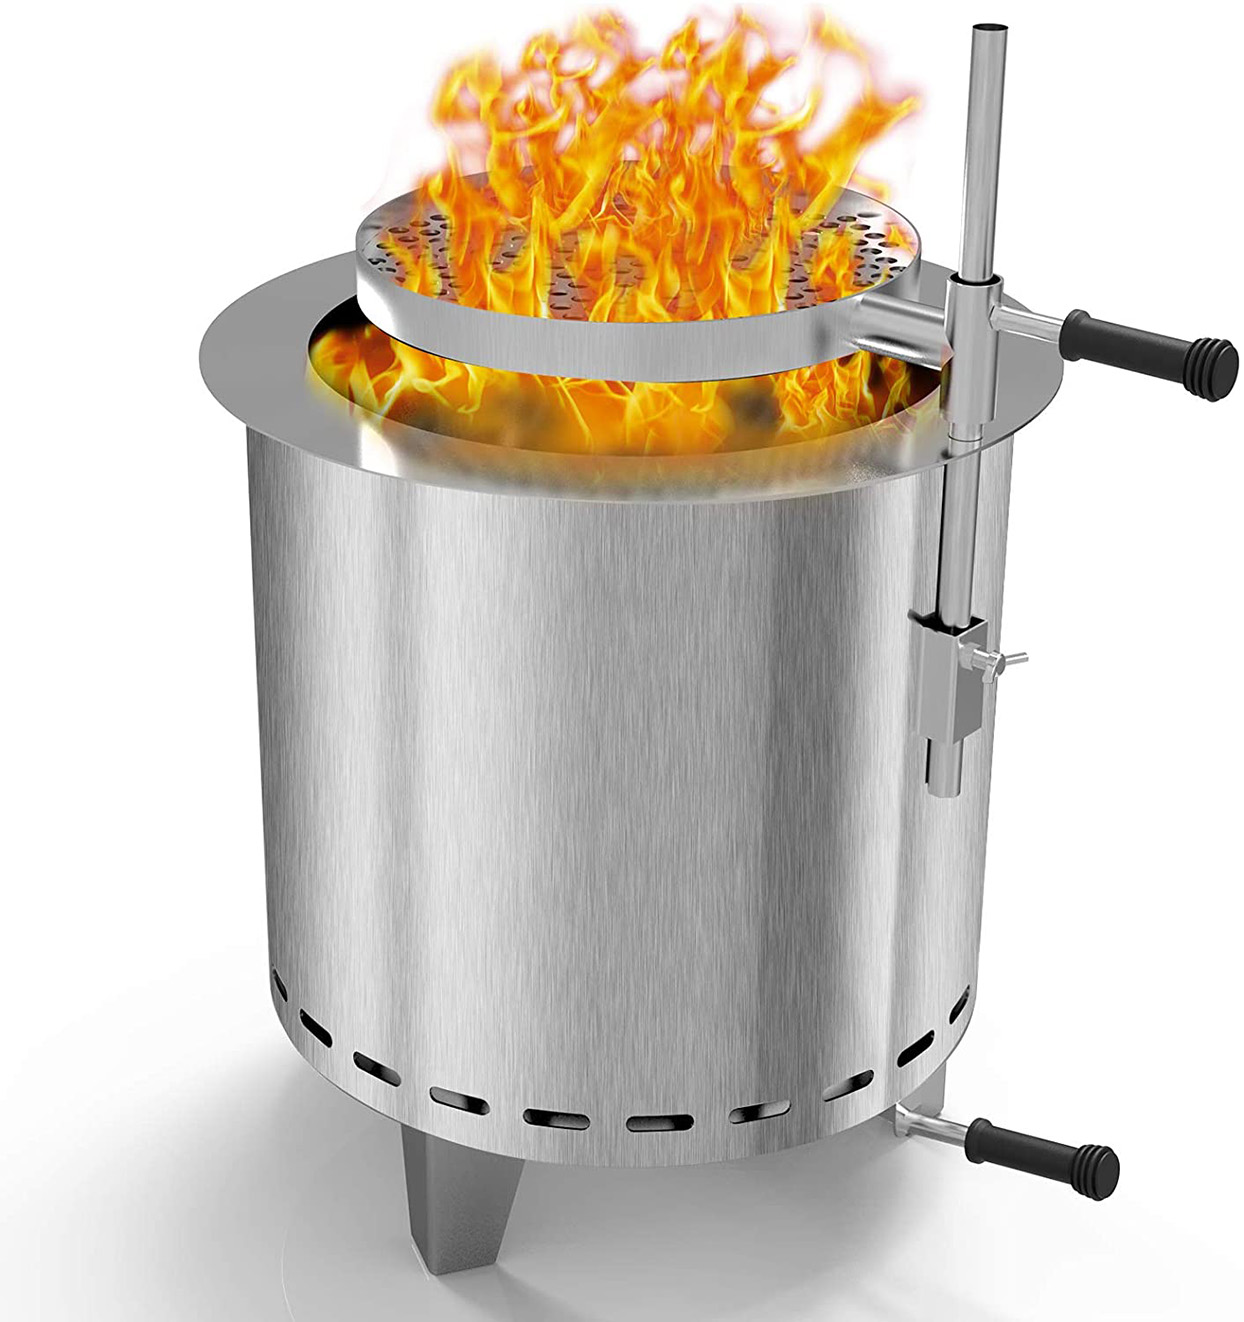 stainless-steel smokeless firepit with grill attachment